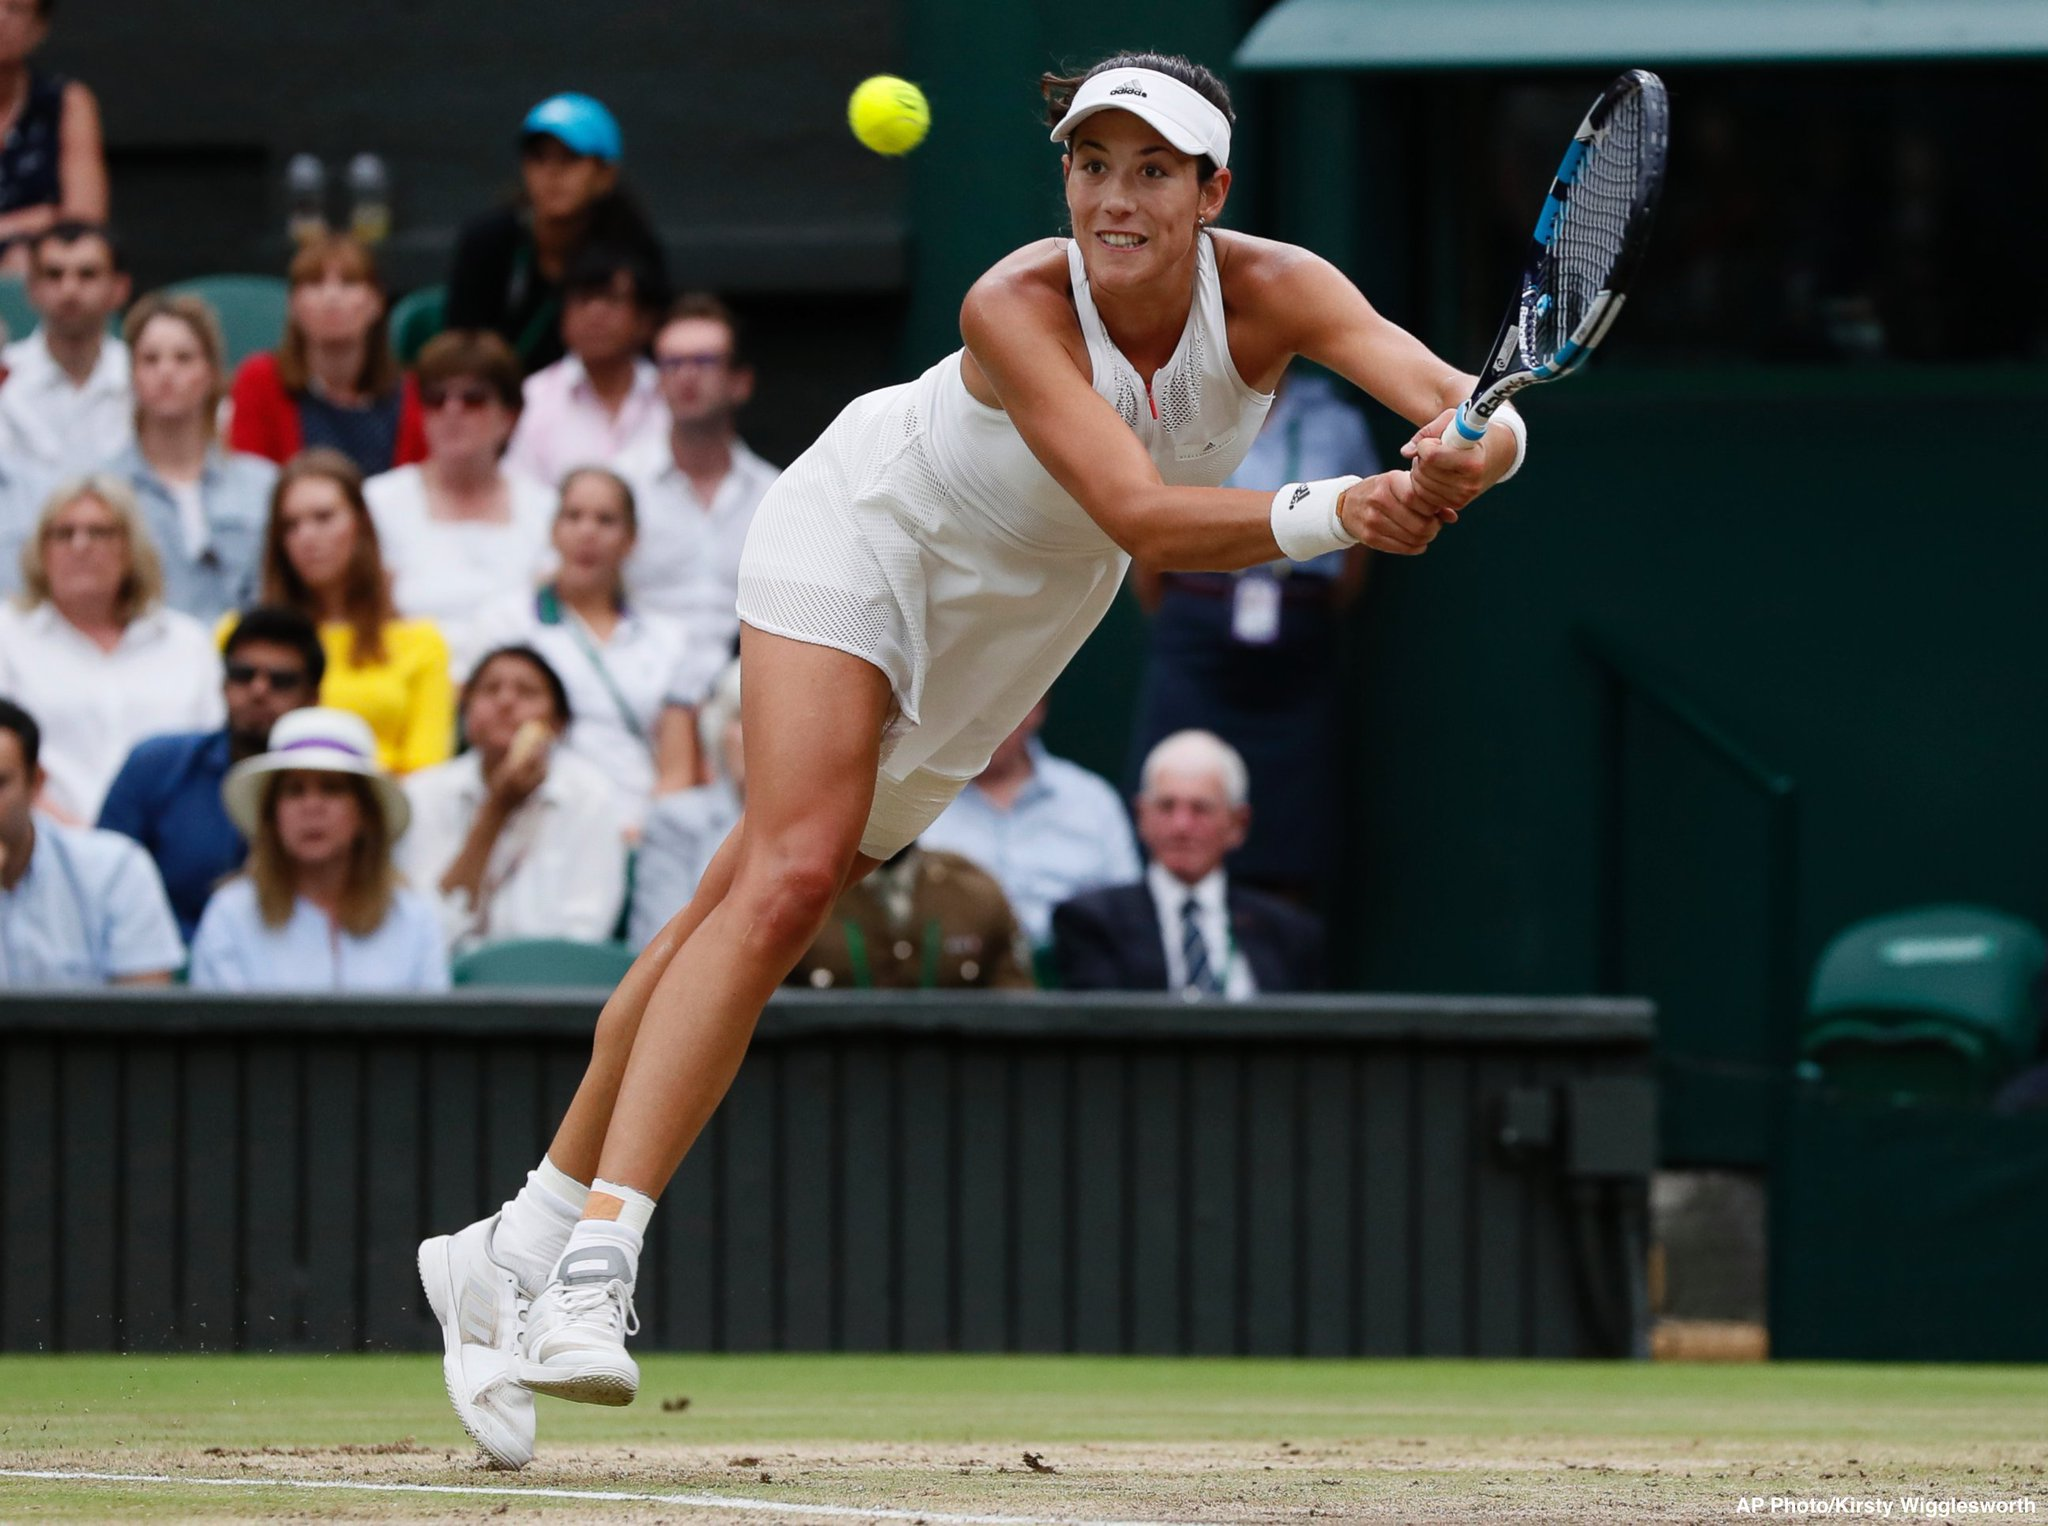 JUST IN: Garbine Muguruza out-powers Venus Williams to win Wimbledon title 7-5, 6-0 https://t.co/Upk5Y39WM4 https://t.co/et9SjqGK47